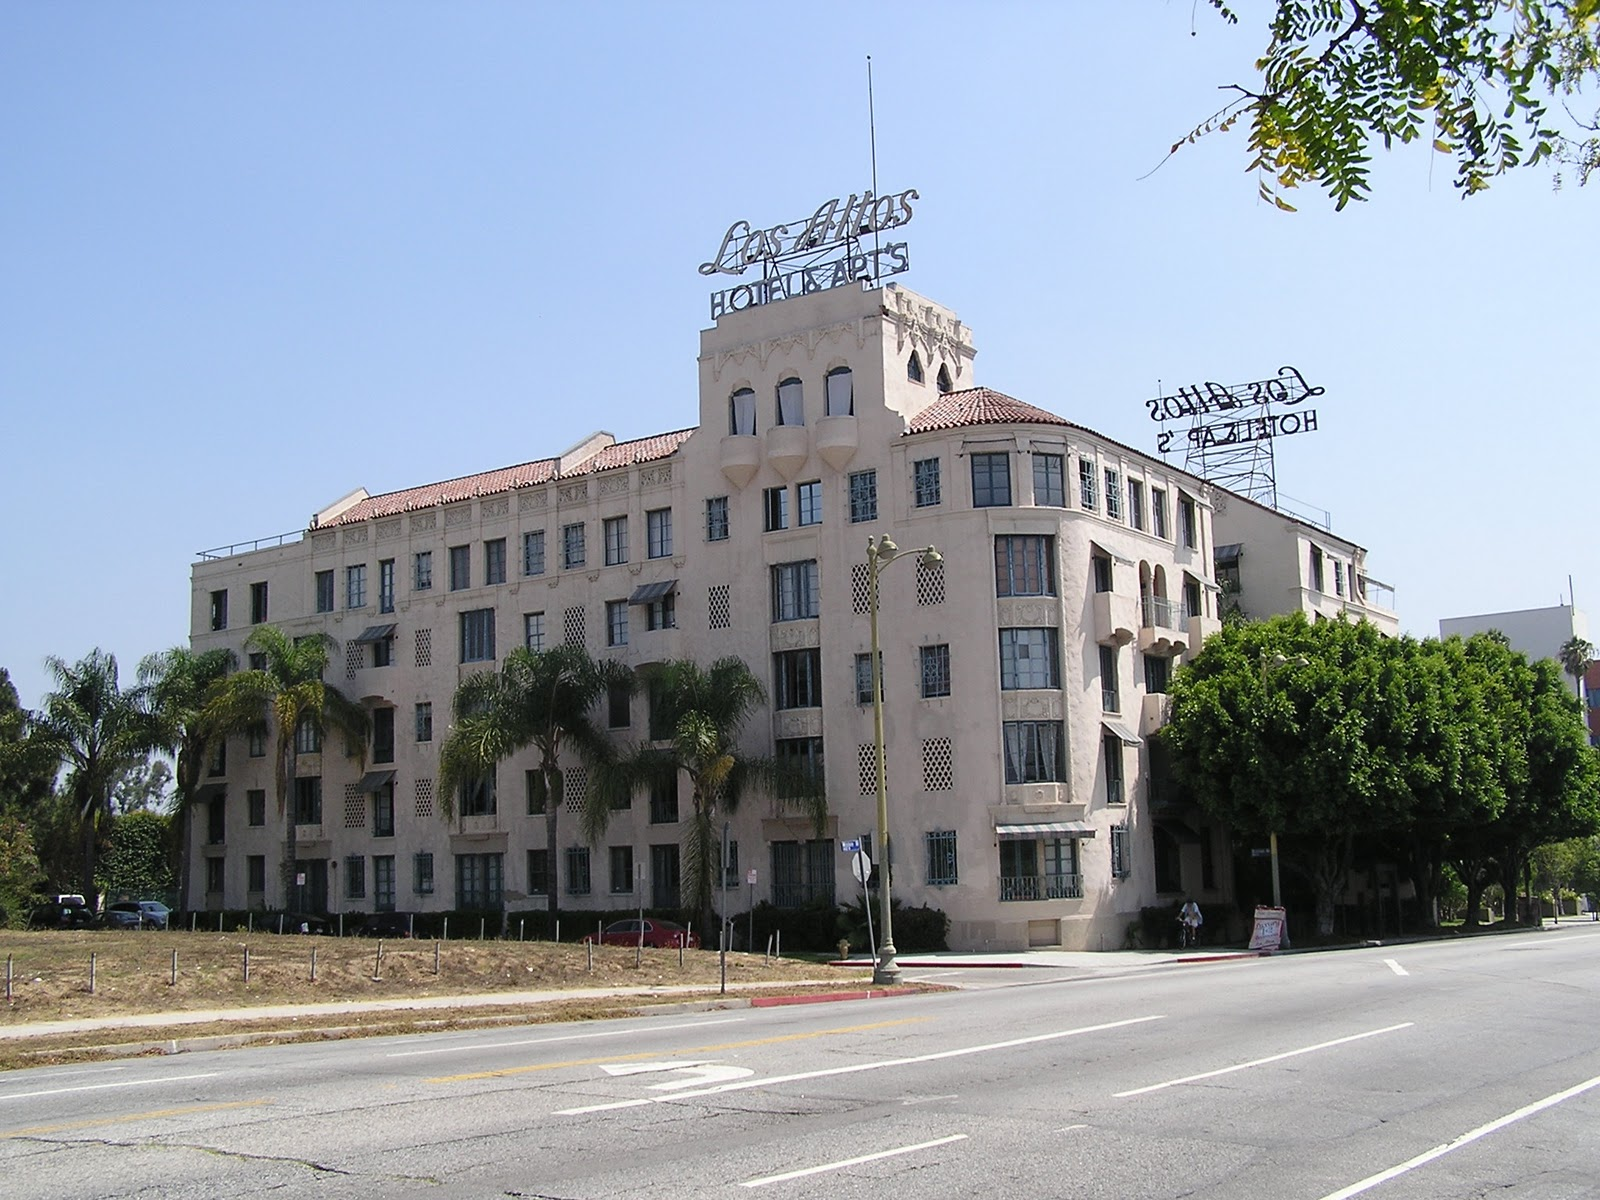 Los Altos Apartments 4121 Wilshire Boulevard Angeles Built In 1925 This Spanish Colonial Style Building Designed By Edward B Rust And Luther Mayo